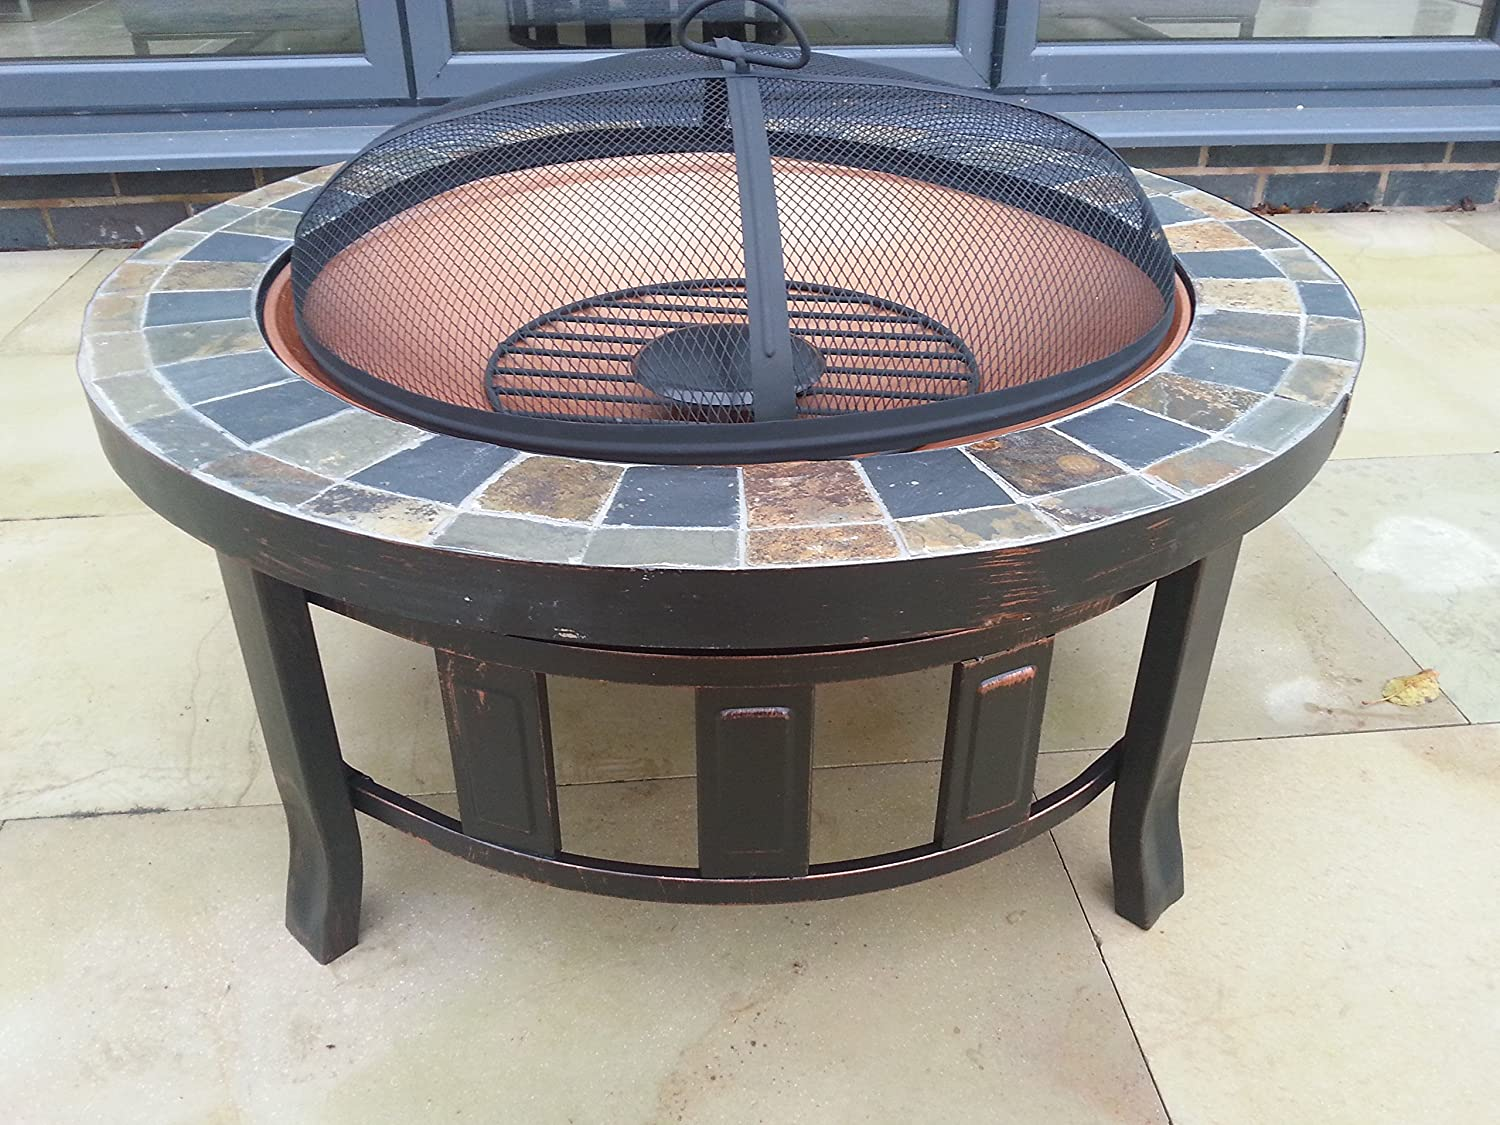 2015 Gladiator Tuscany Garden Patio Fire Pit Round Slate Mozaic Tiled  Decking Heater Metal Firepit Brazier Barbecue Table: Amazon.co.uk: Garden U0026  Outdoors